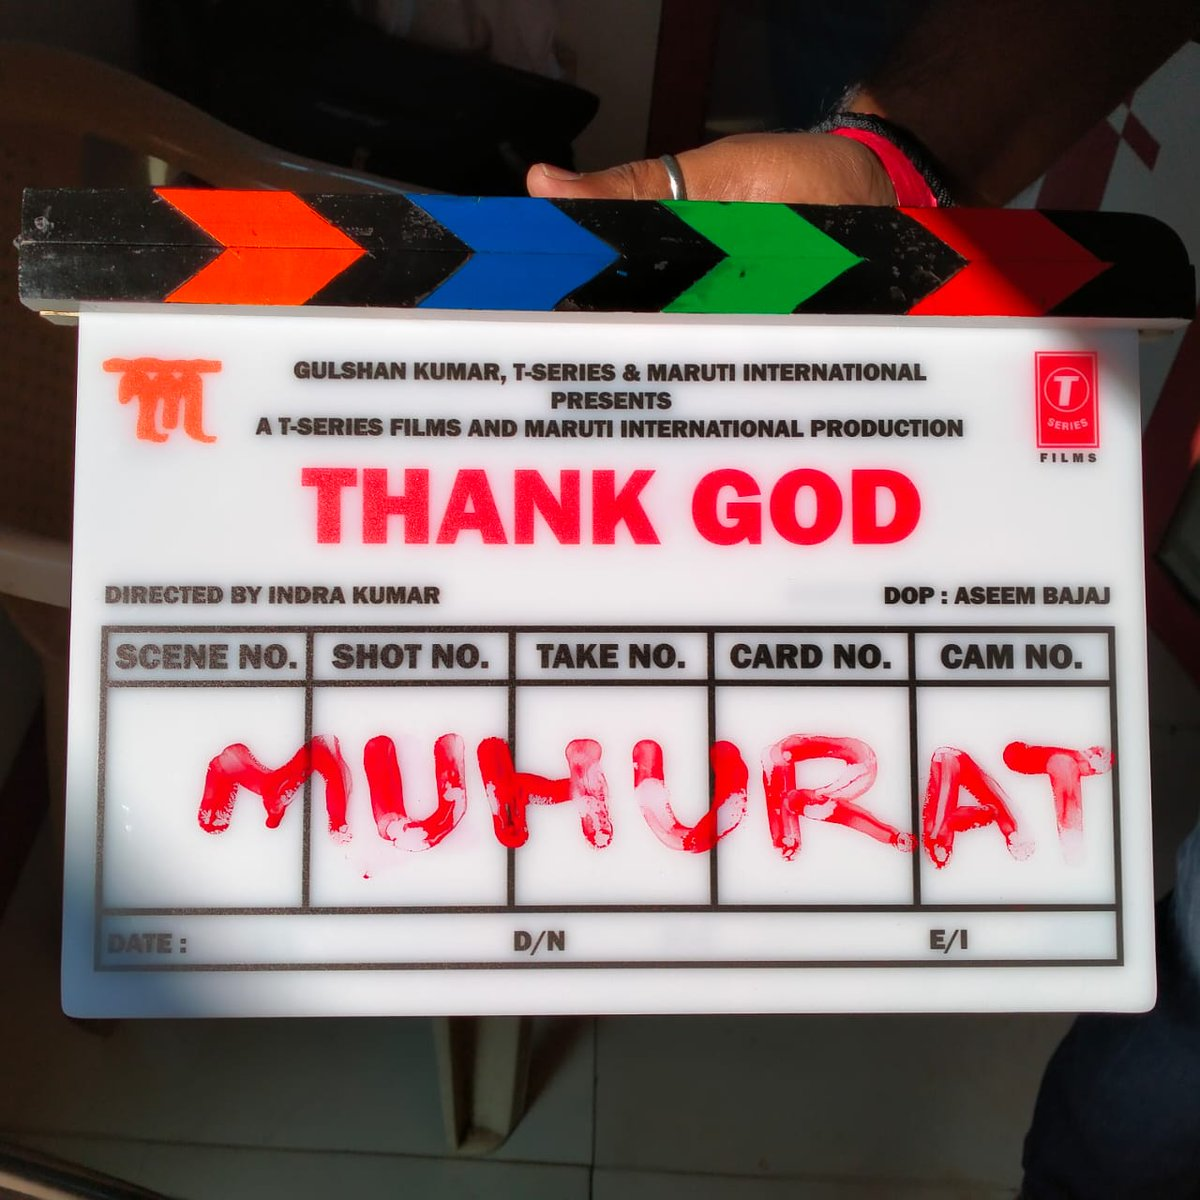 AJAY DEVGN - SIDHARTH MALHOTRA - RAKUL PREET: MAHURAT HELD - SHOOT STARTS... #ThankGod - a slice of life comedy starring #AjayDevgn, #SidharthMalhotra and #RakulPreet - commences shoot in #Mumbai today... Directed by Indra Kumar.